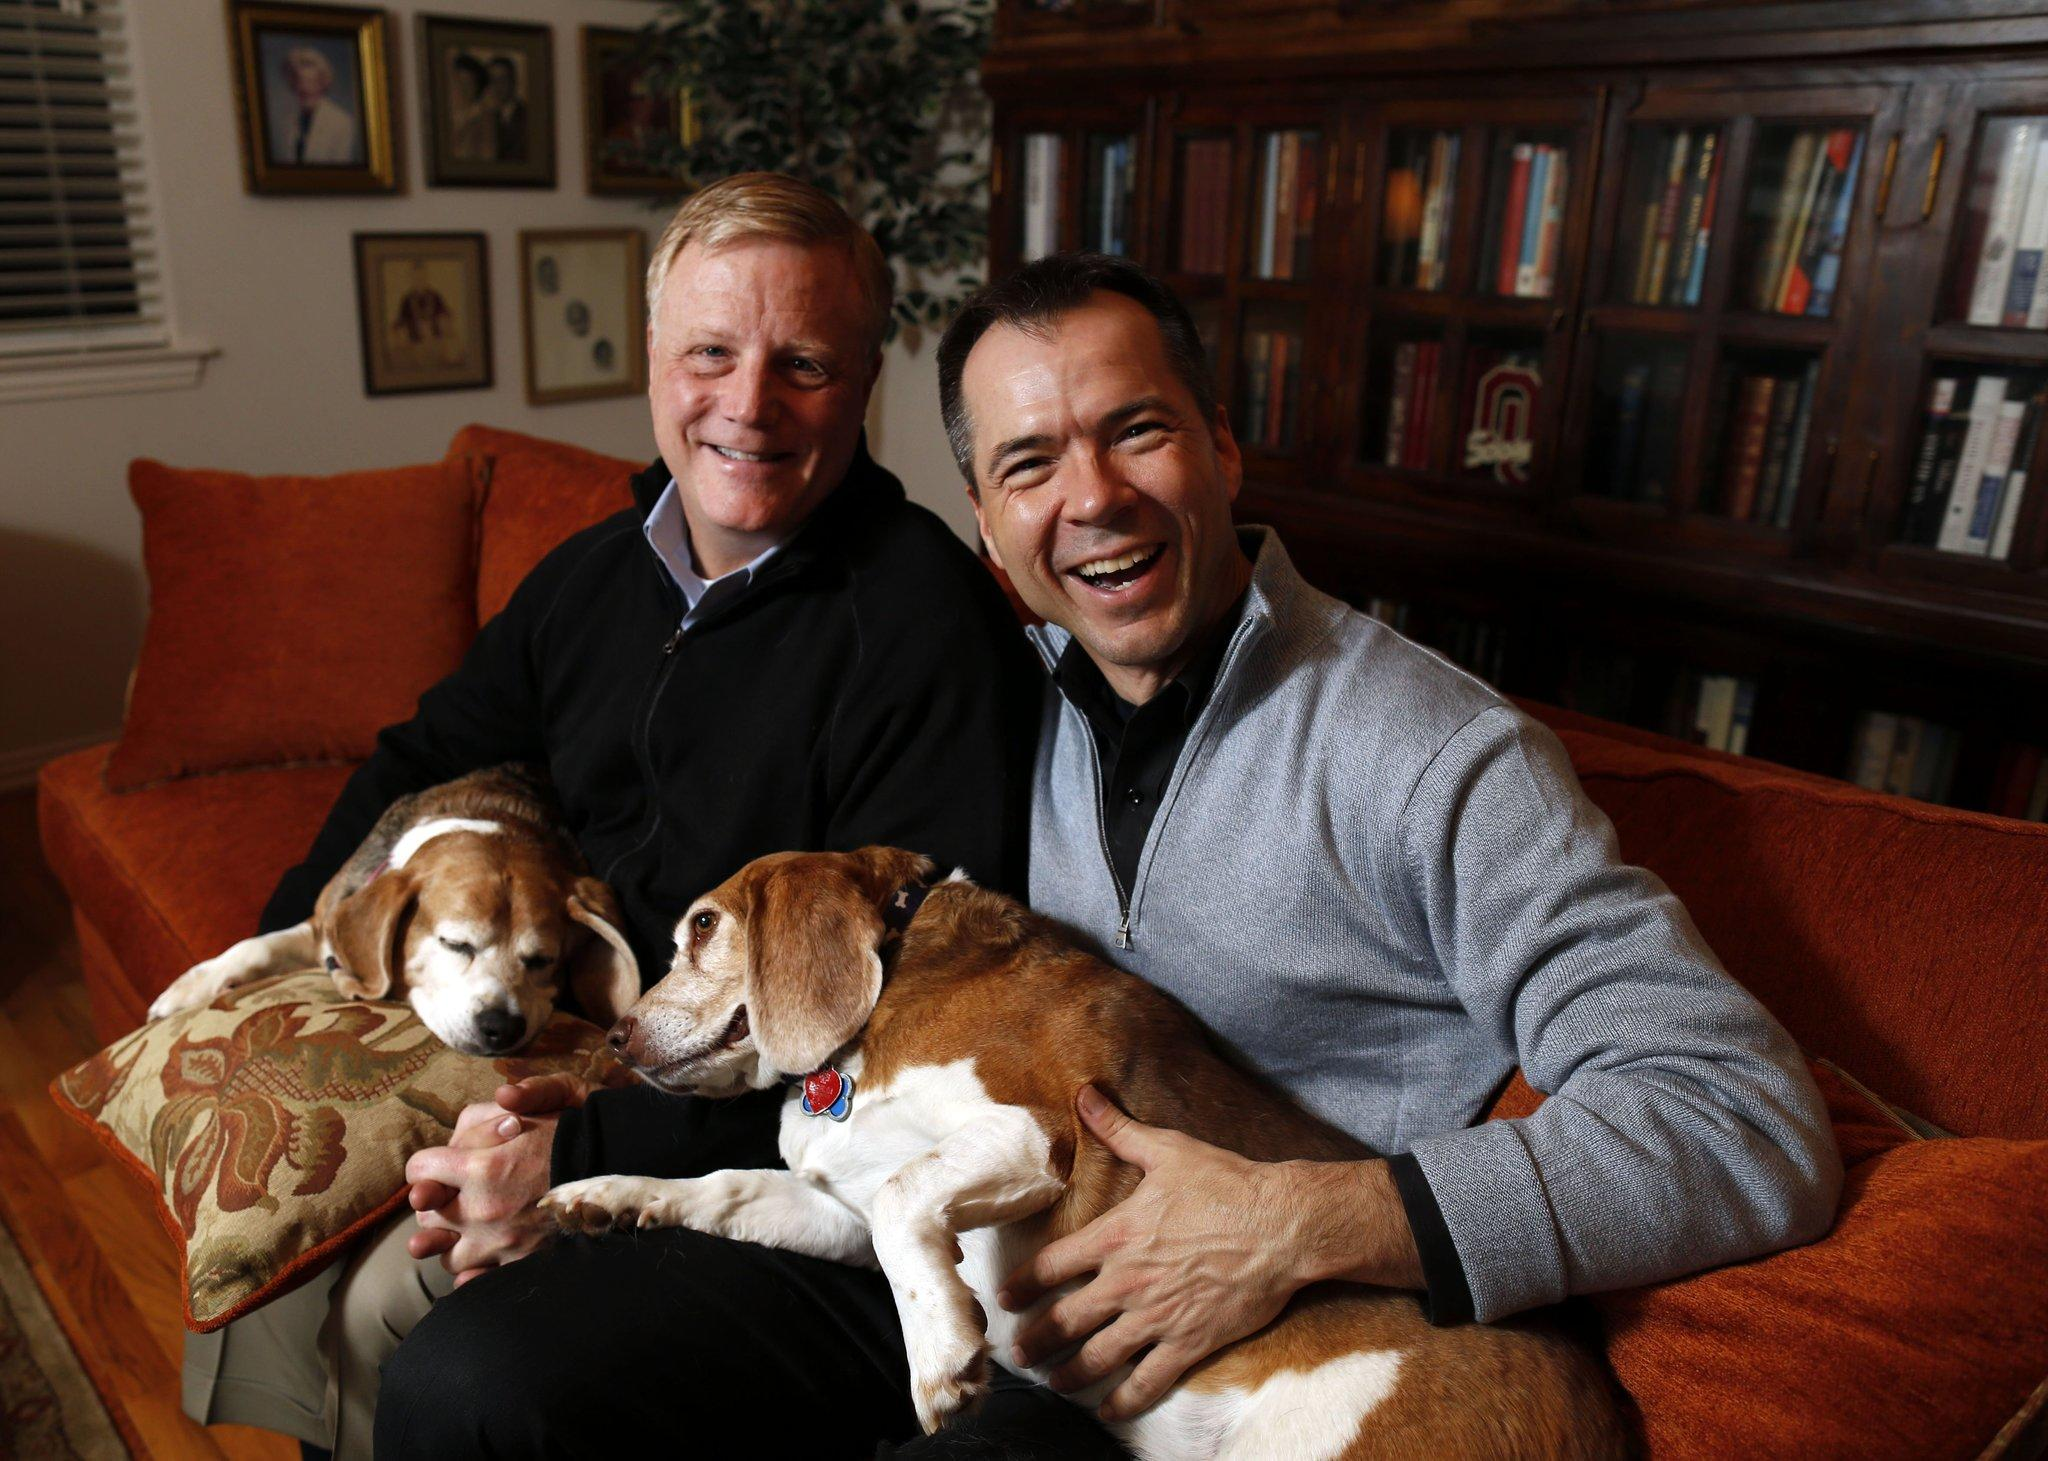 Plaintiffs Mark Pharris (left) and partner Victor Holmes, in their Plano, Texas home, met in 1997. Phariss is a lawyer and Holmes is a retired Air Force major.